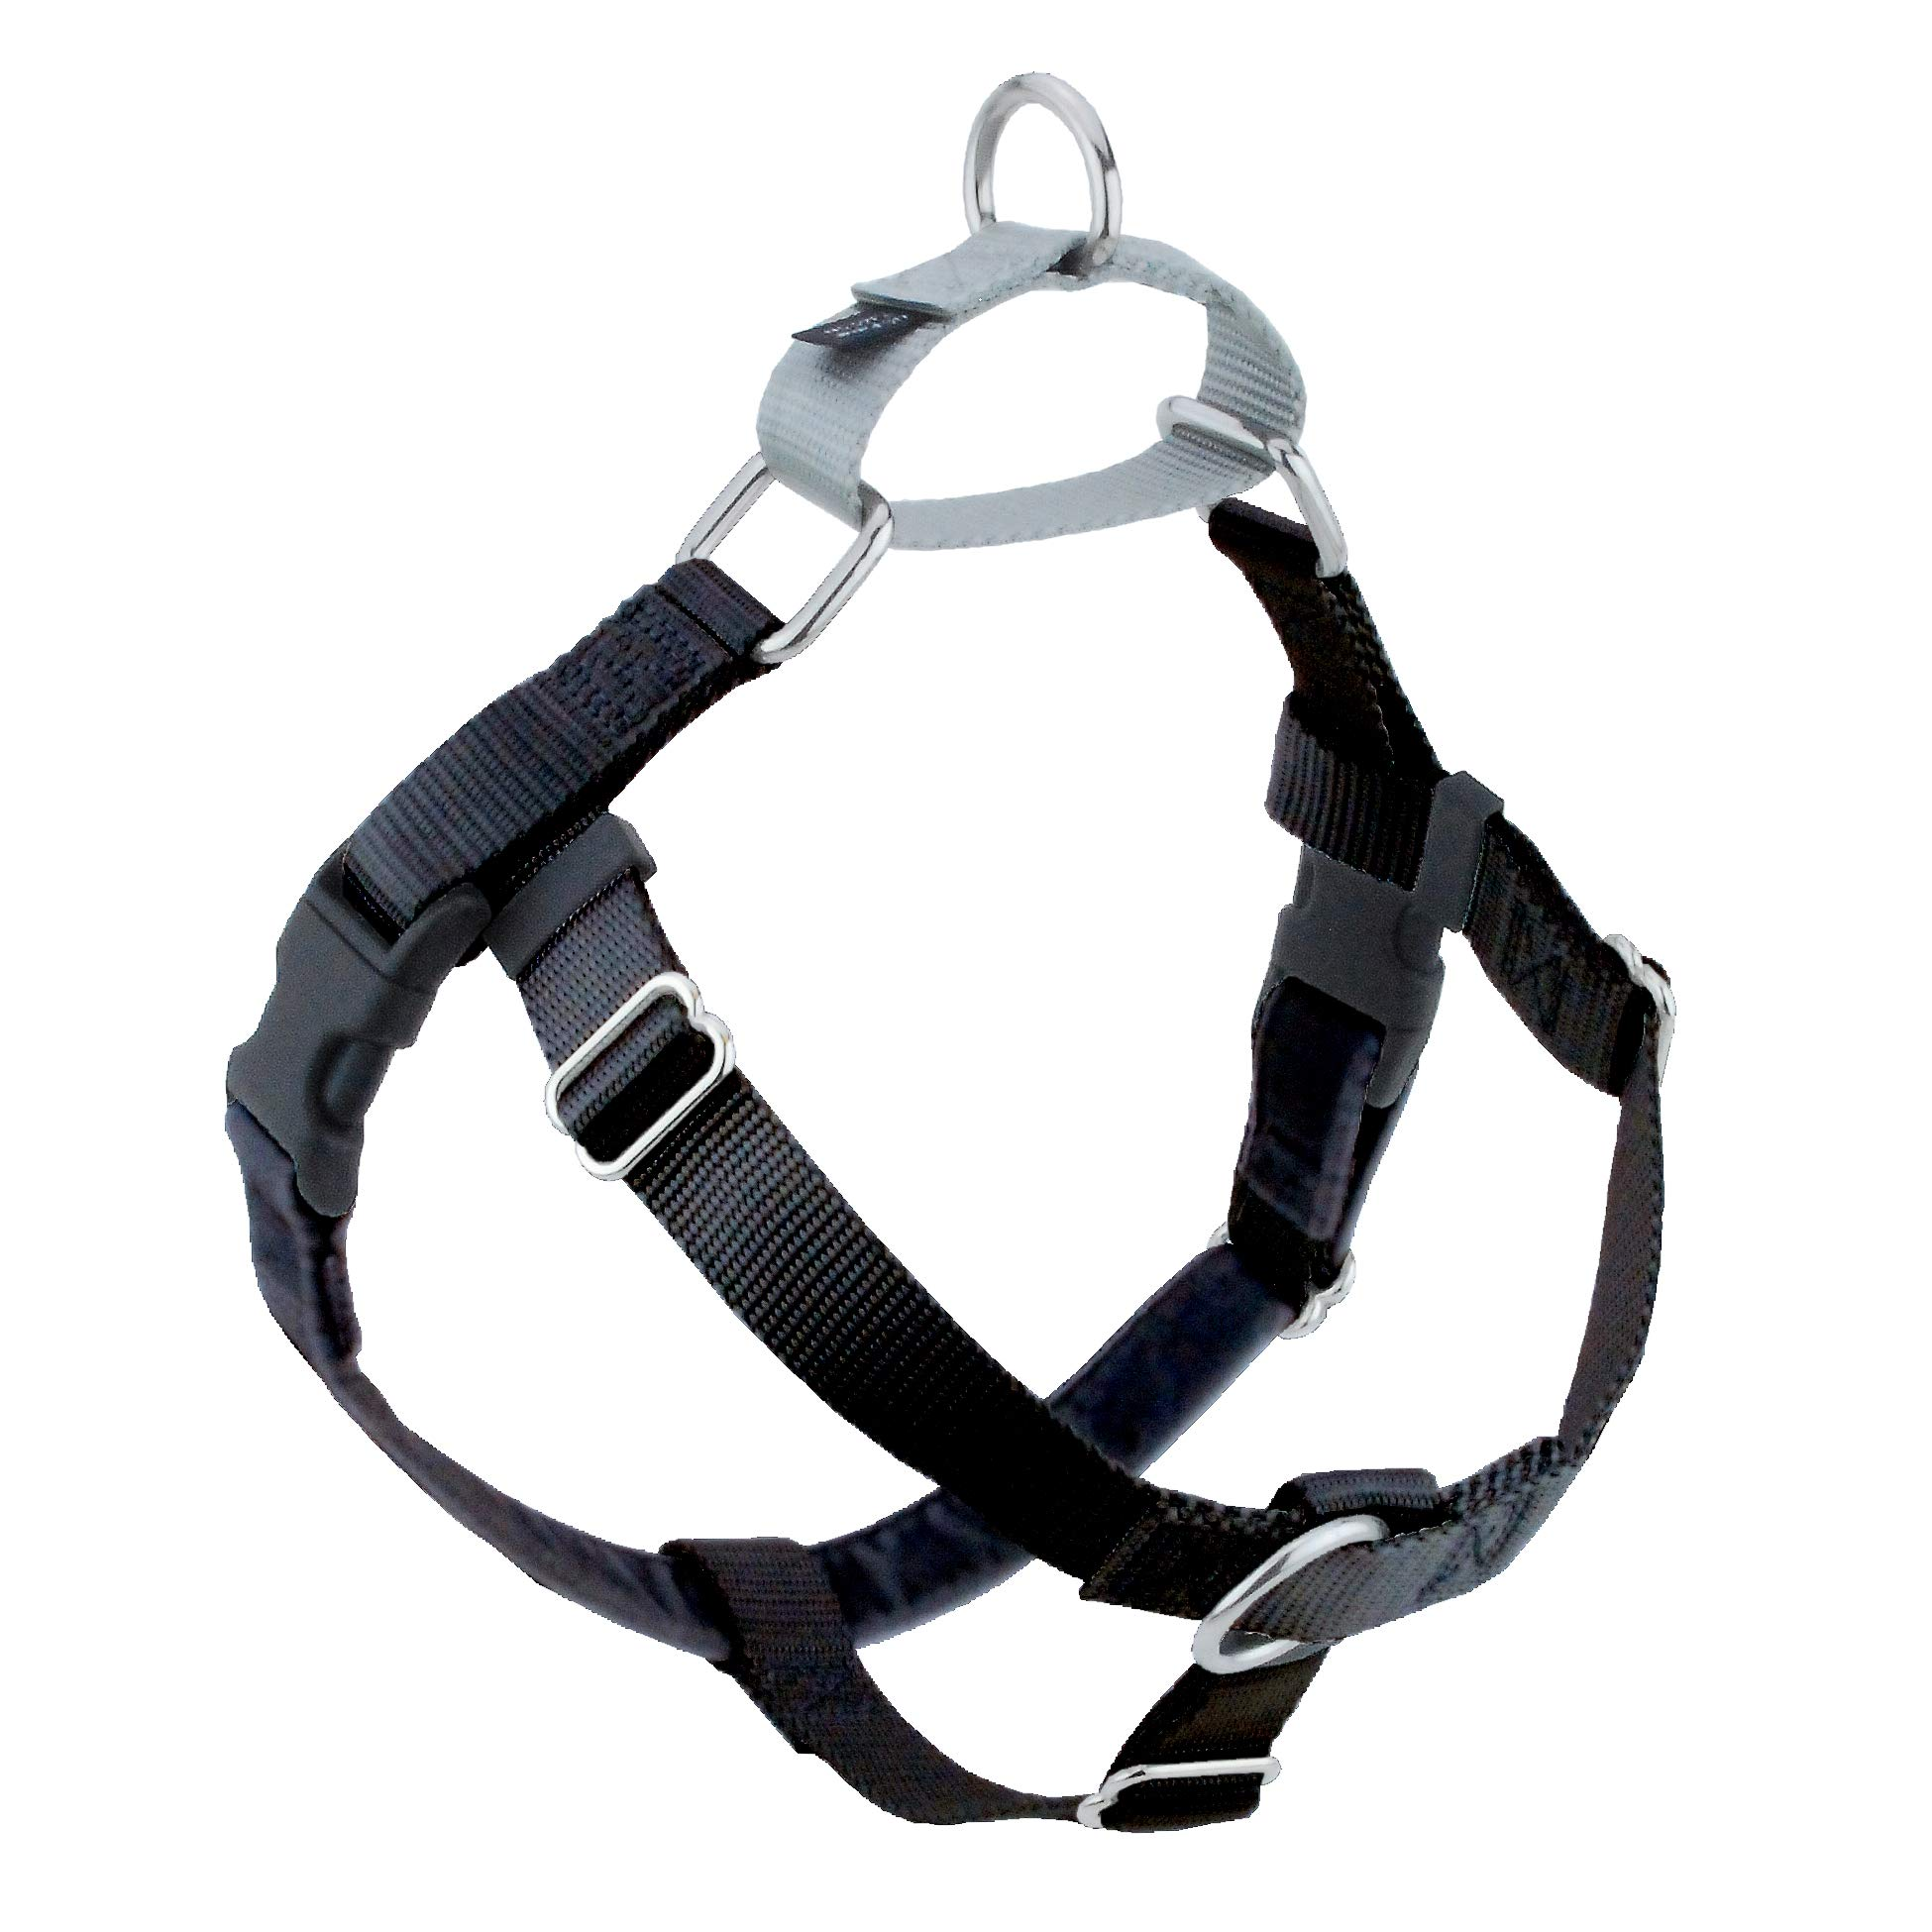 2 Hounds Design Freedom No-Pull Dog Harness, Adjustable Comfortable Control for Dog Walking, Made in USA (Leash Sold Separately) (Small 5/8'') (Black) by 2 Hounds Design